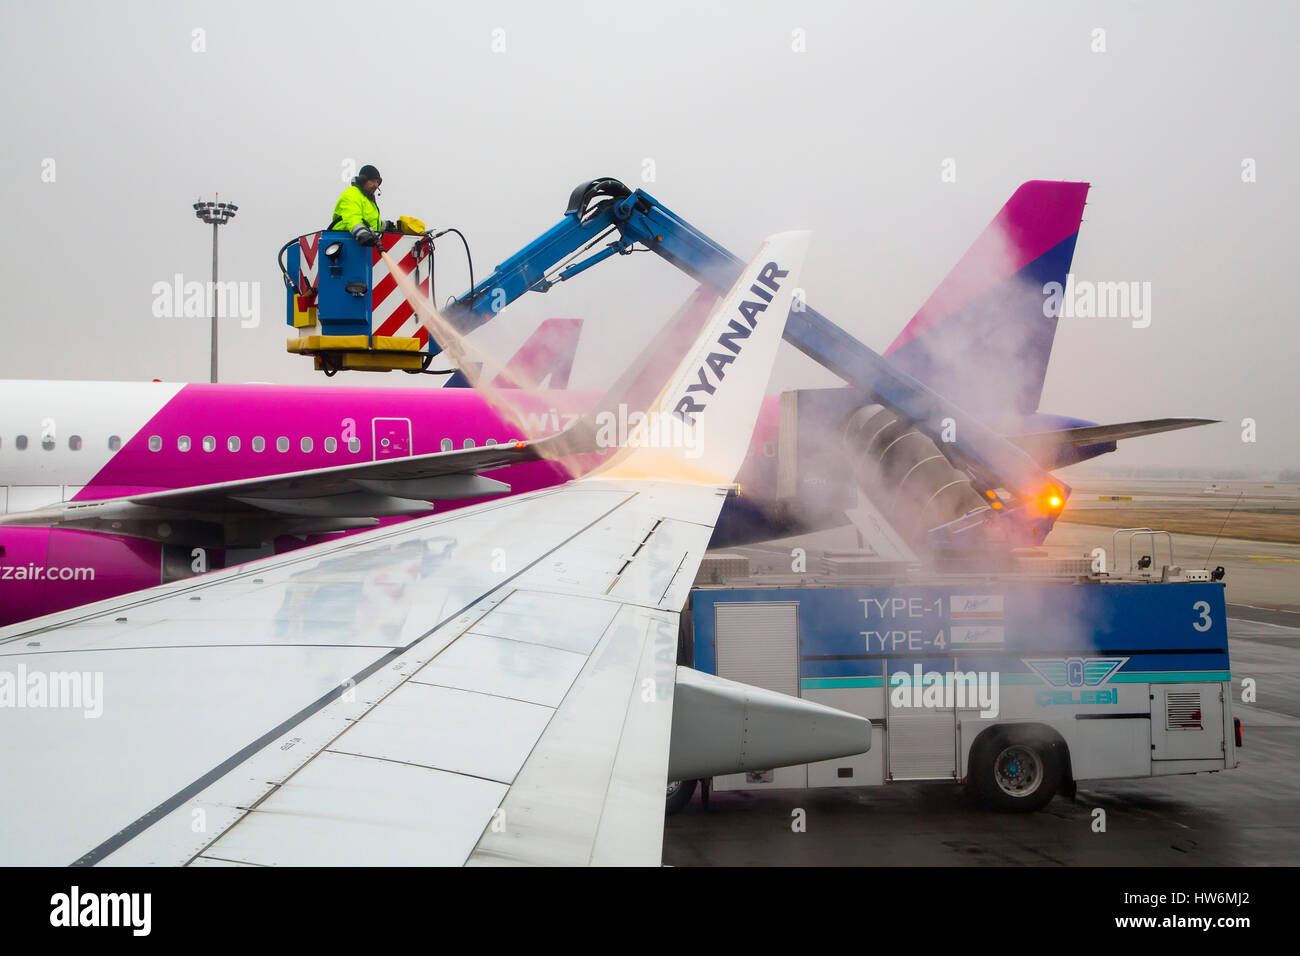 Clearing Ice And De-icing Aircraft. Budapest airport. Hungary, Southeast Europe - Stock Image